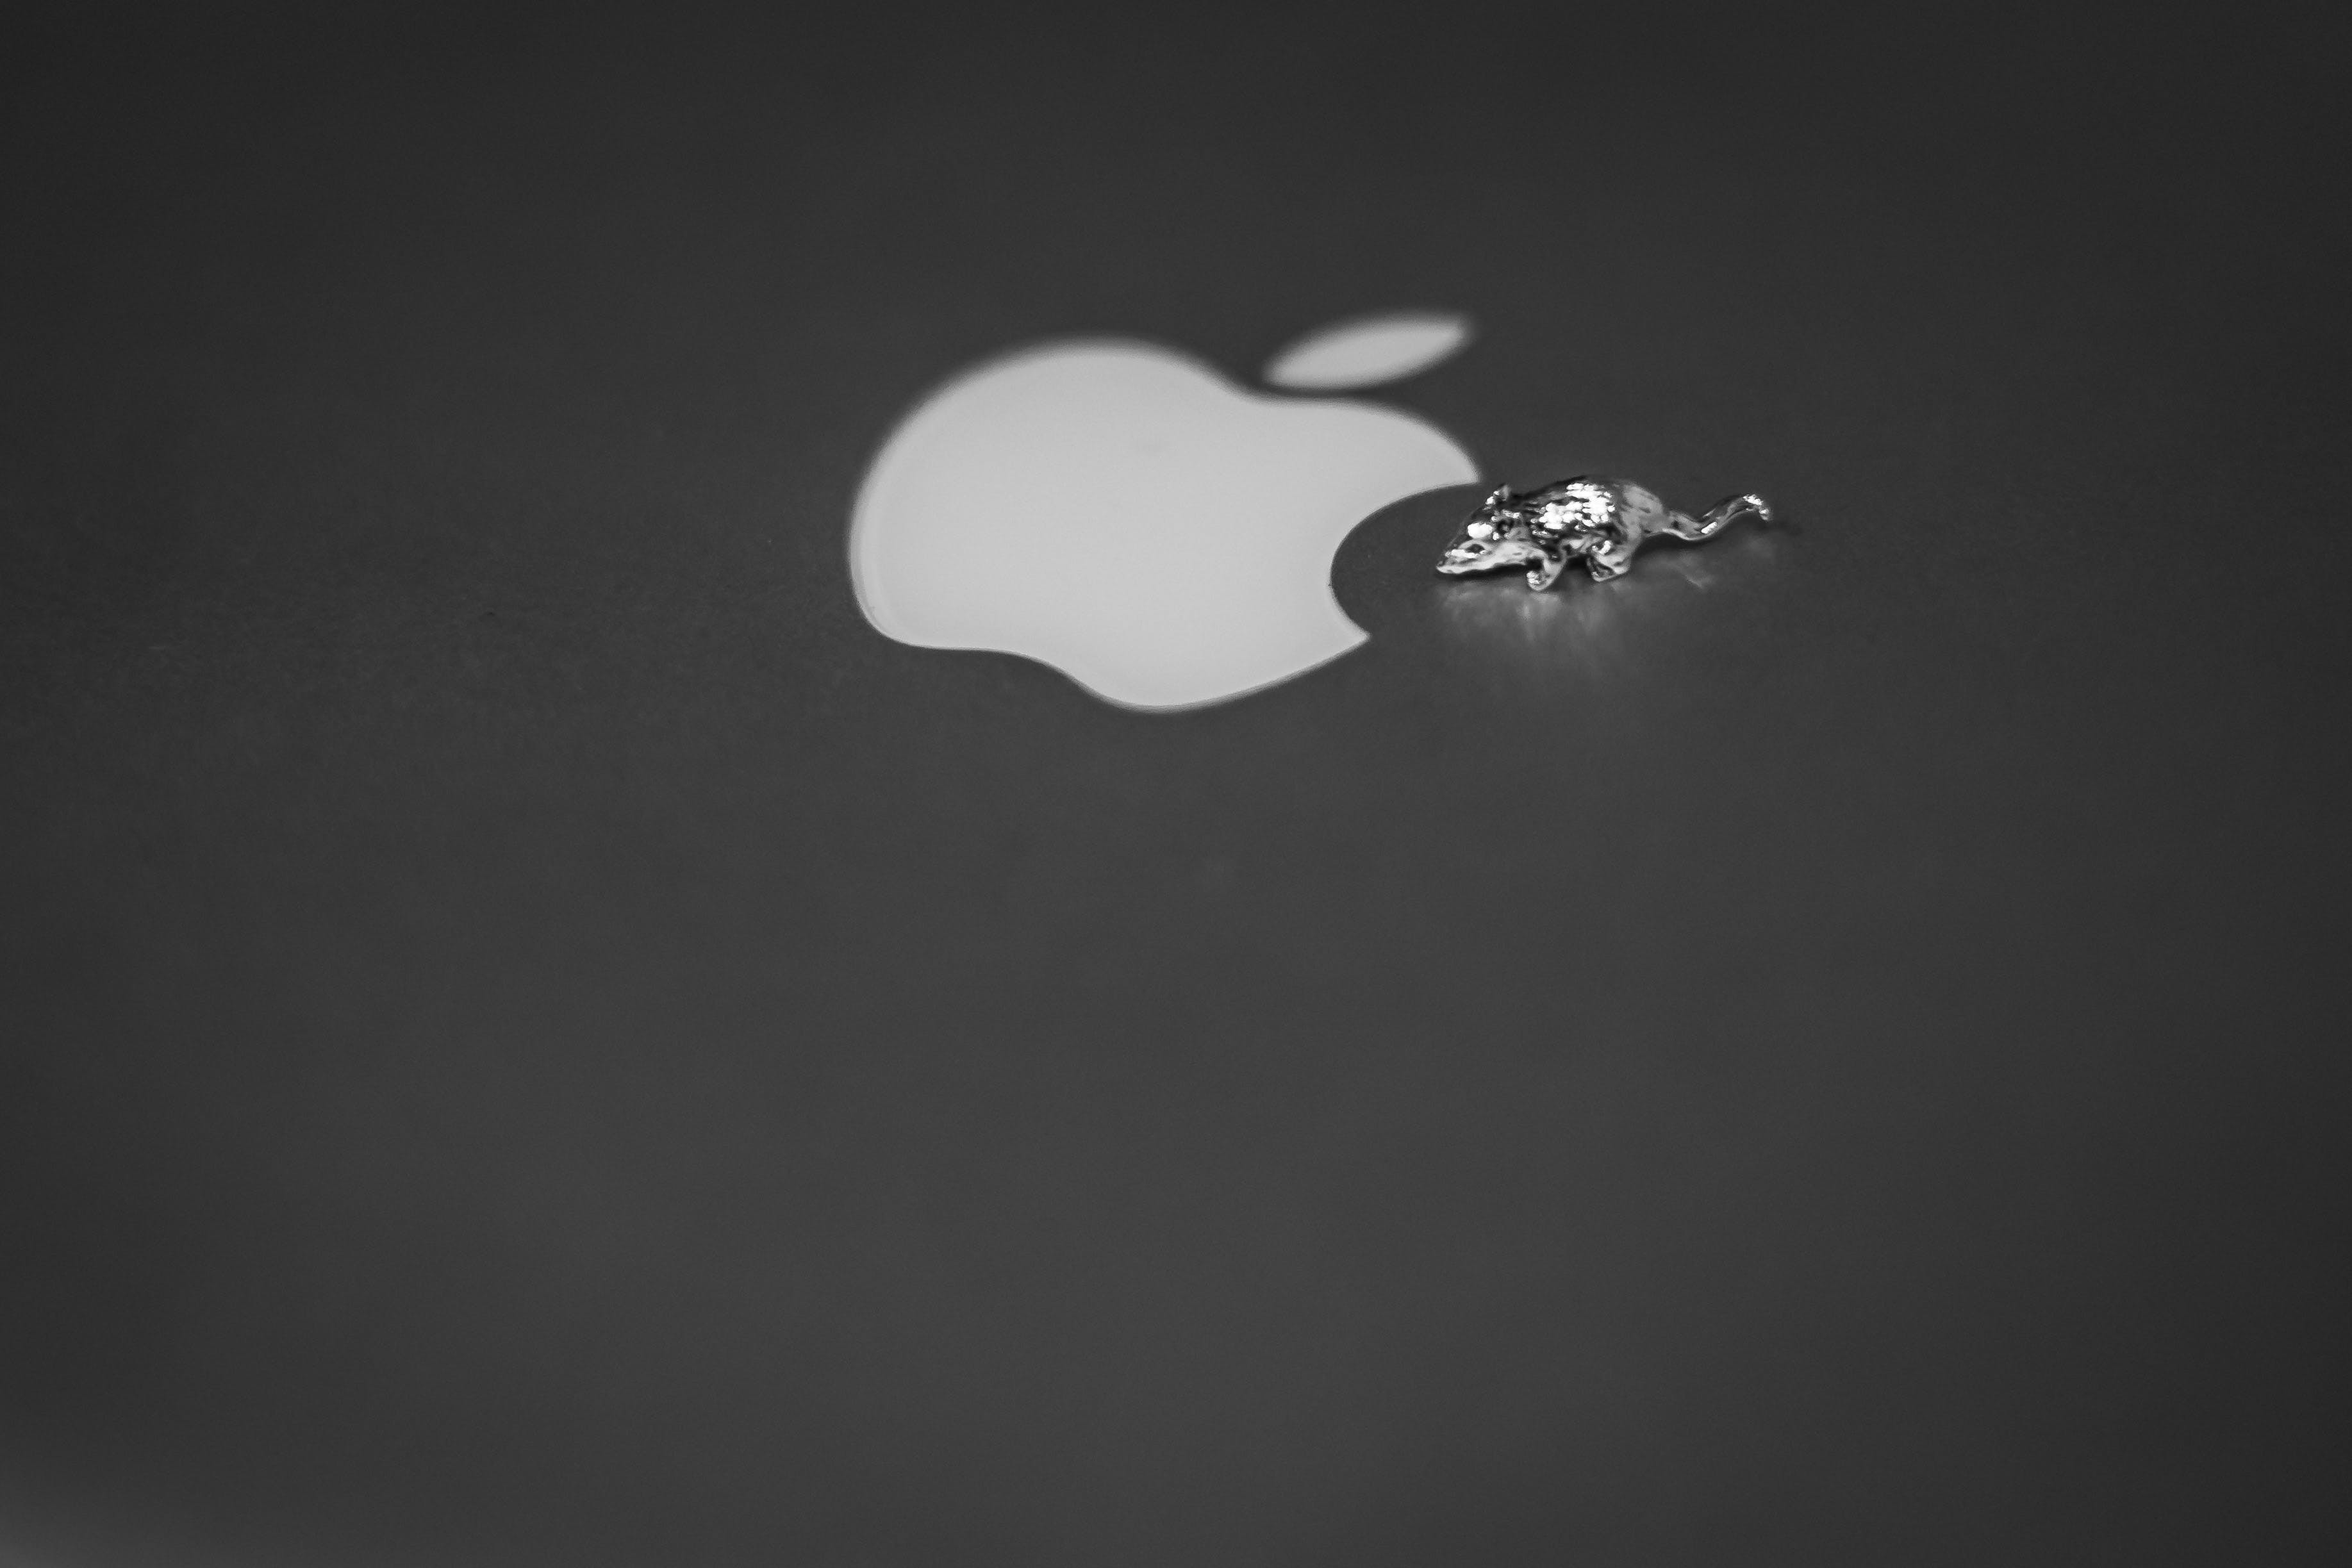 Free stock photo of night, apple, mouse, miniature